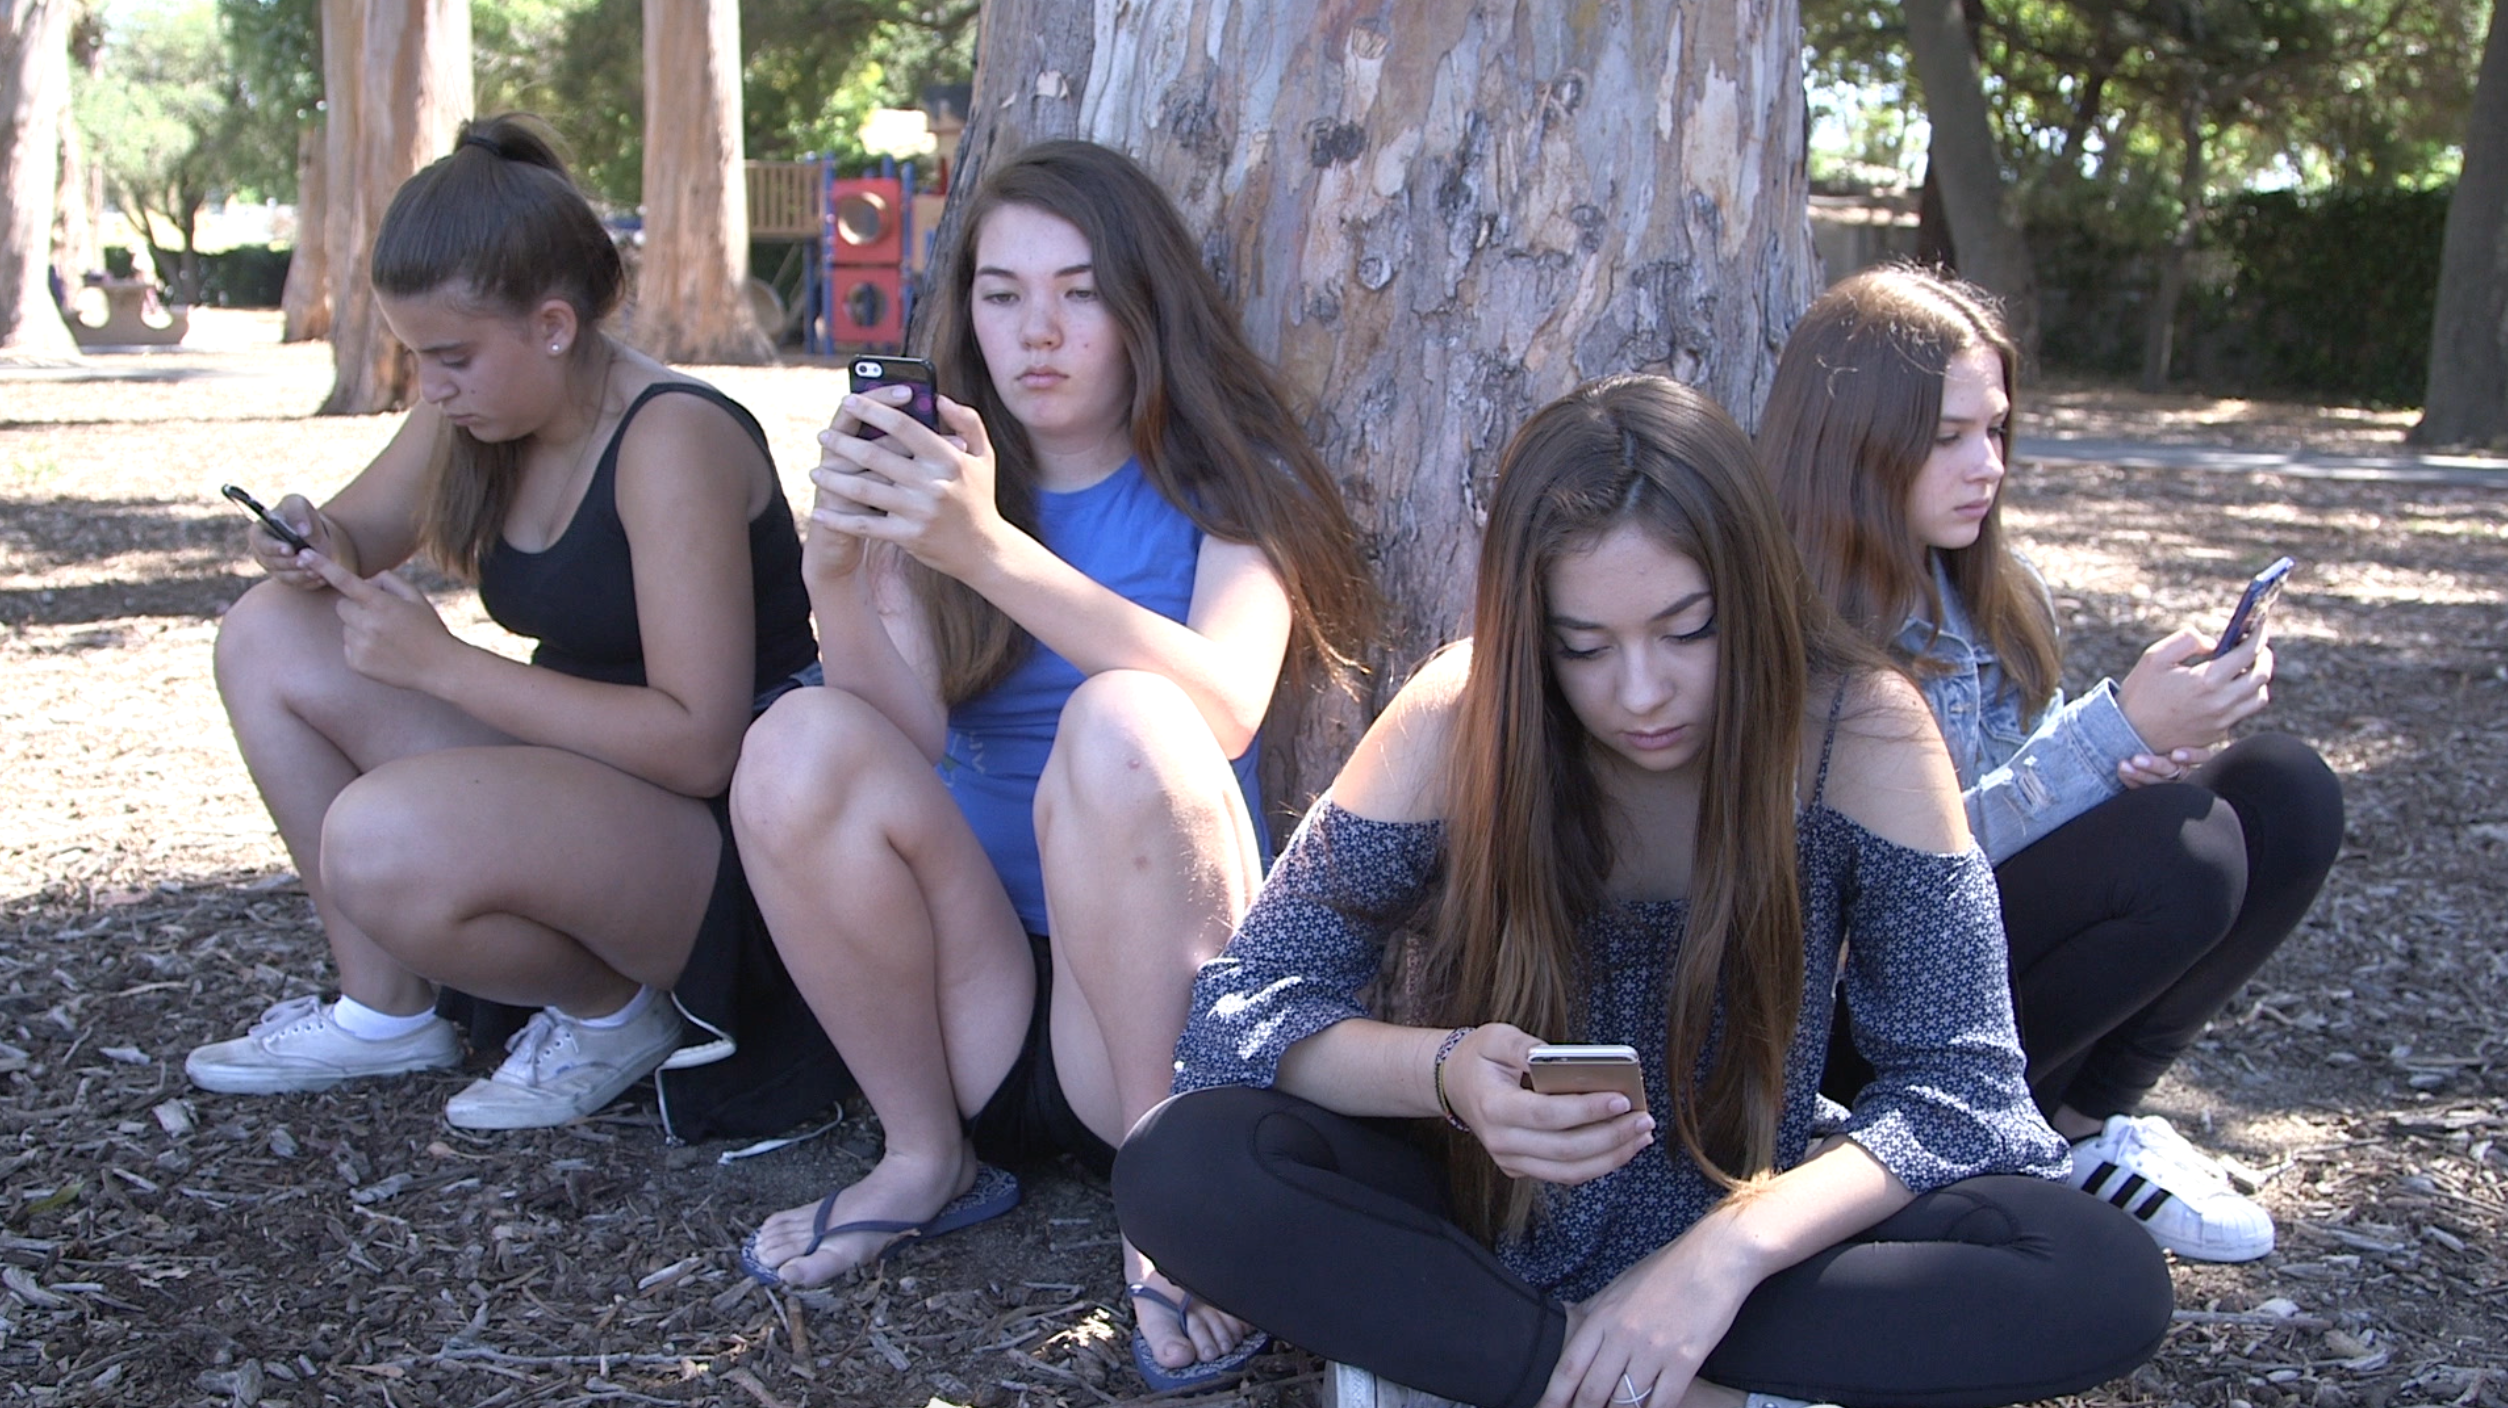 Teenagers looking at their phones